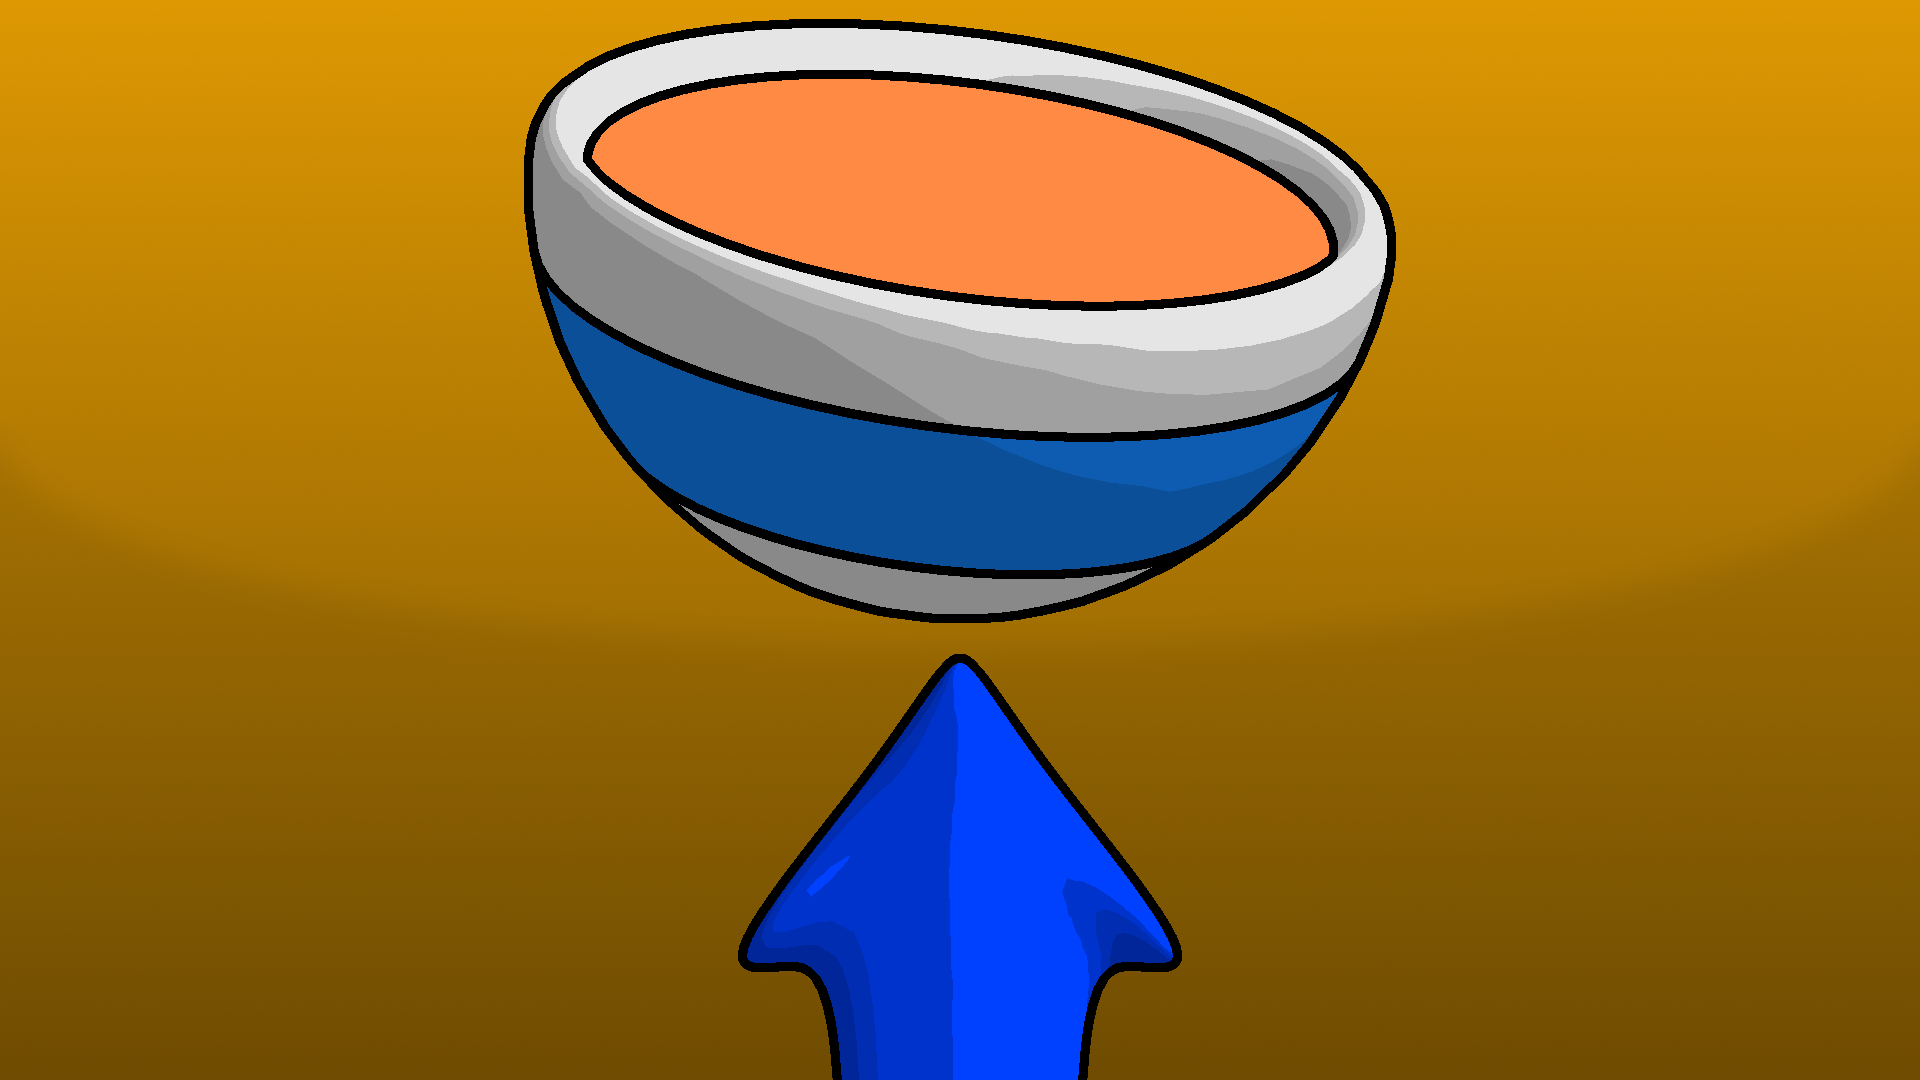 Icon for On The Way Up